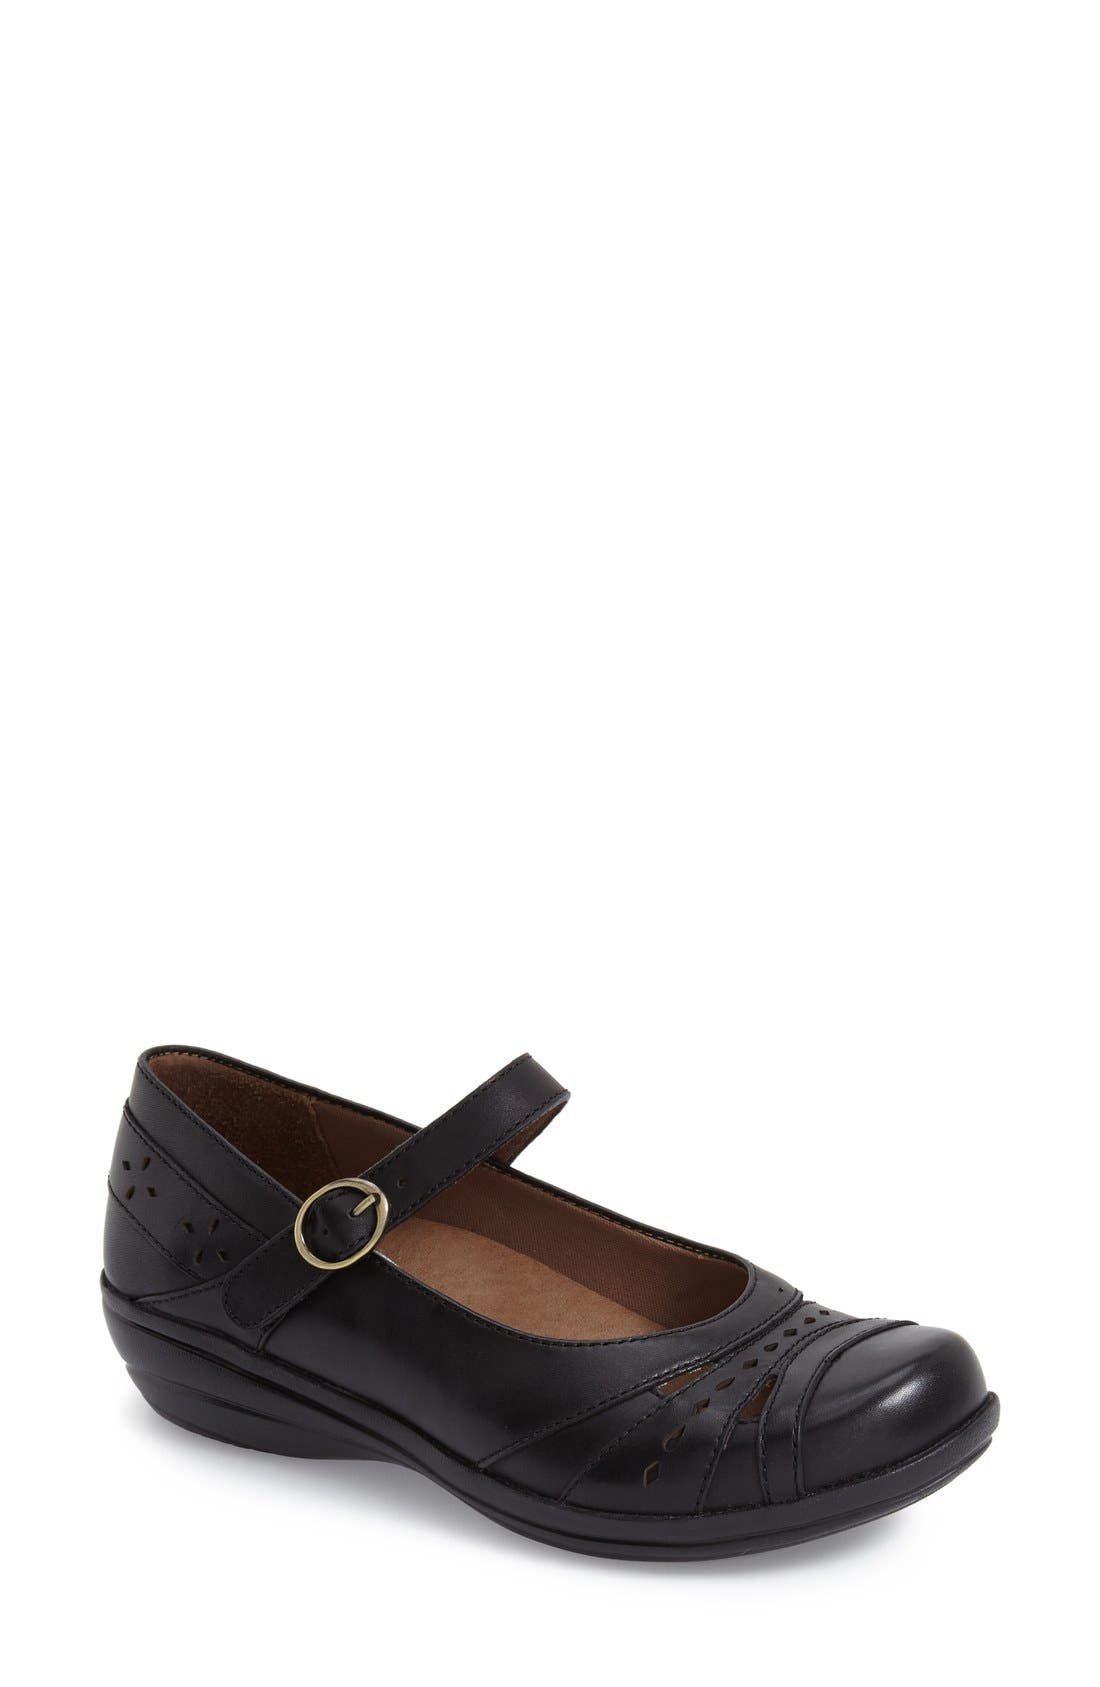 DANSKO 'Mathilda' Mary Jane Wedge